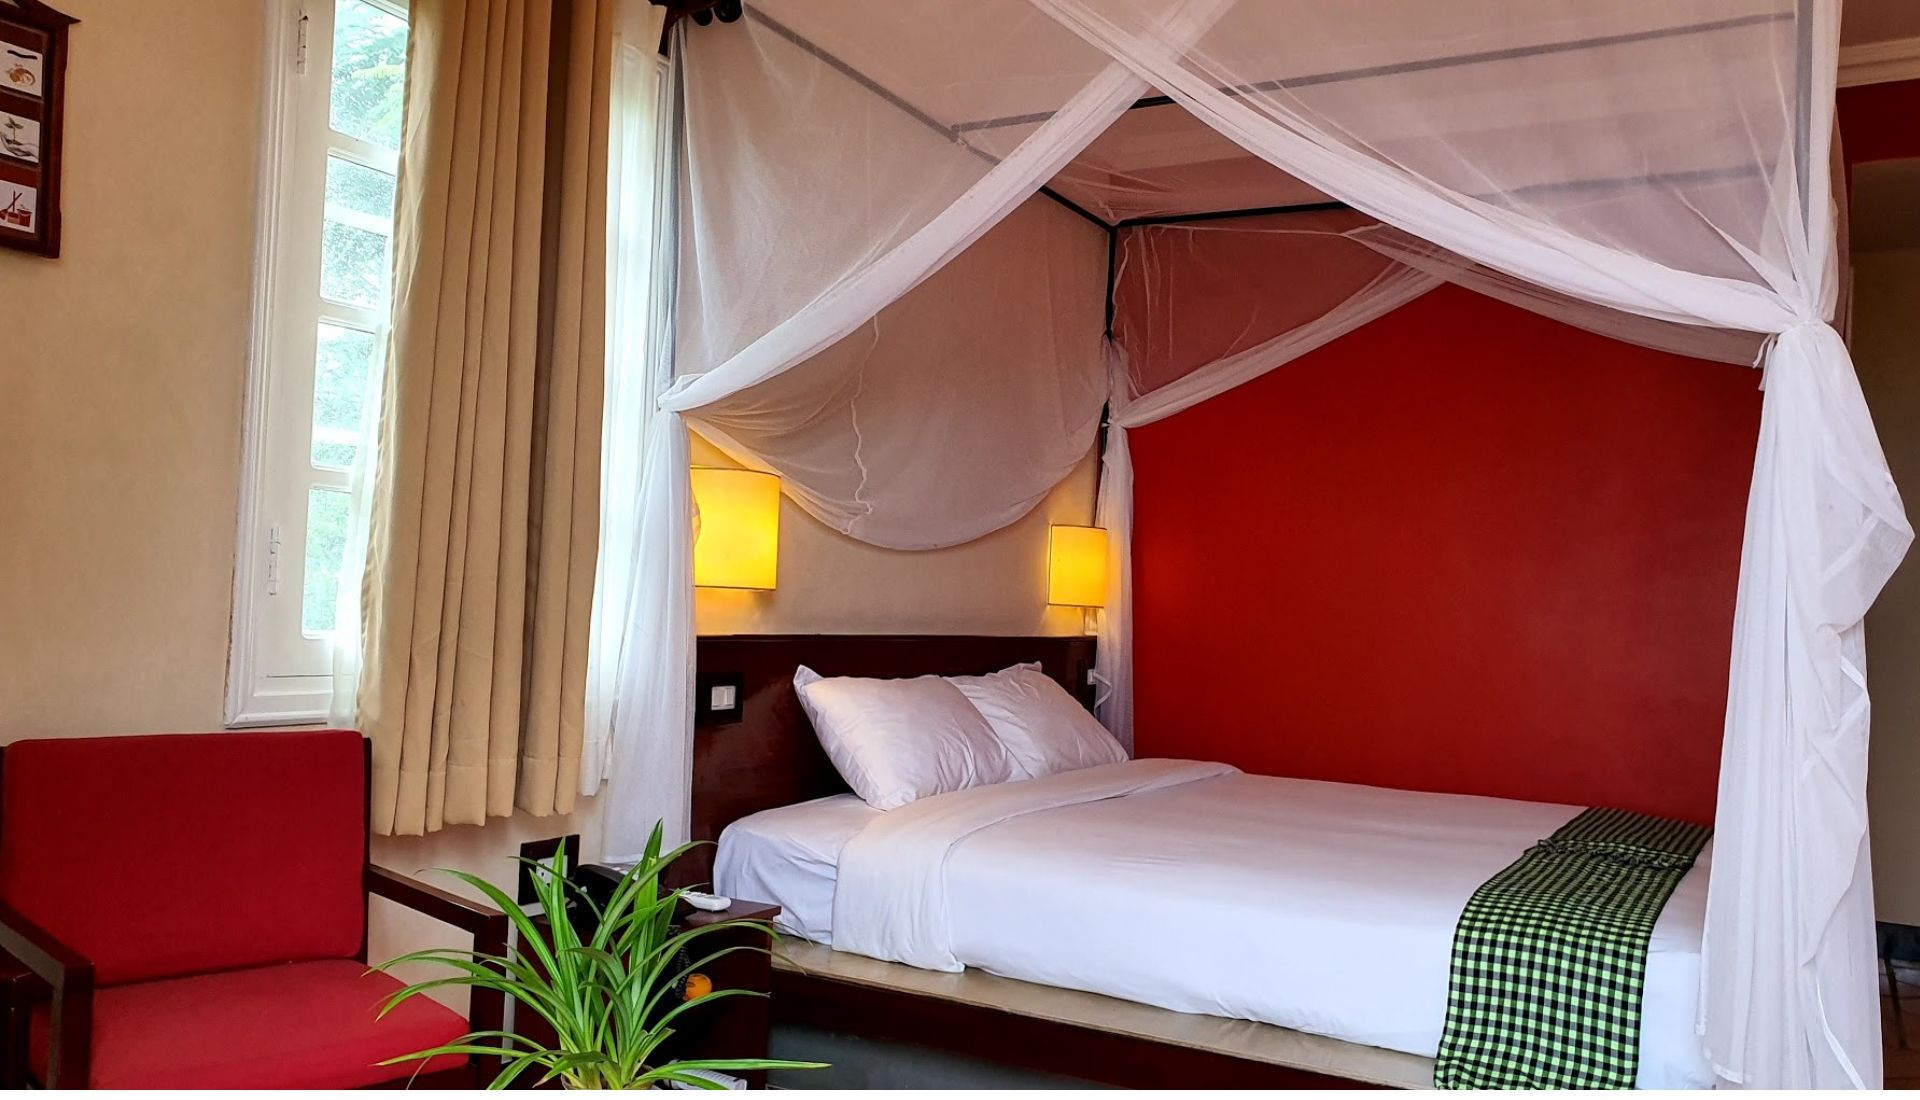 Accommodation at the Victoria Nui Sam Hotel